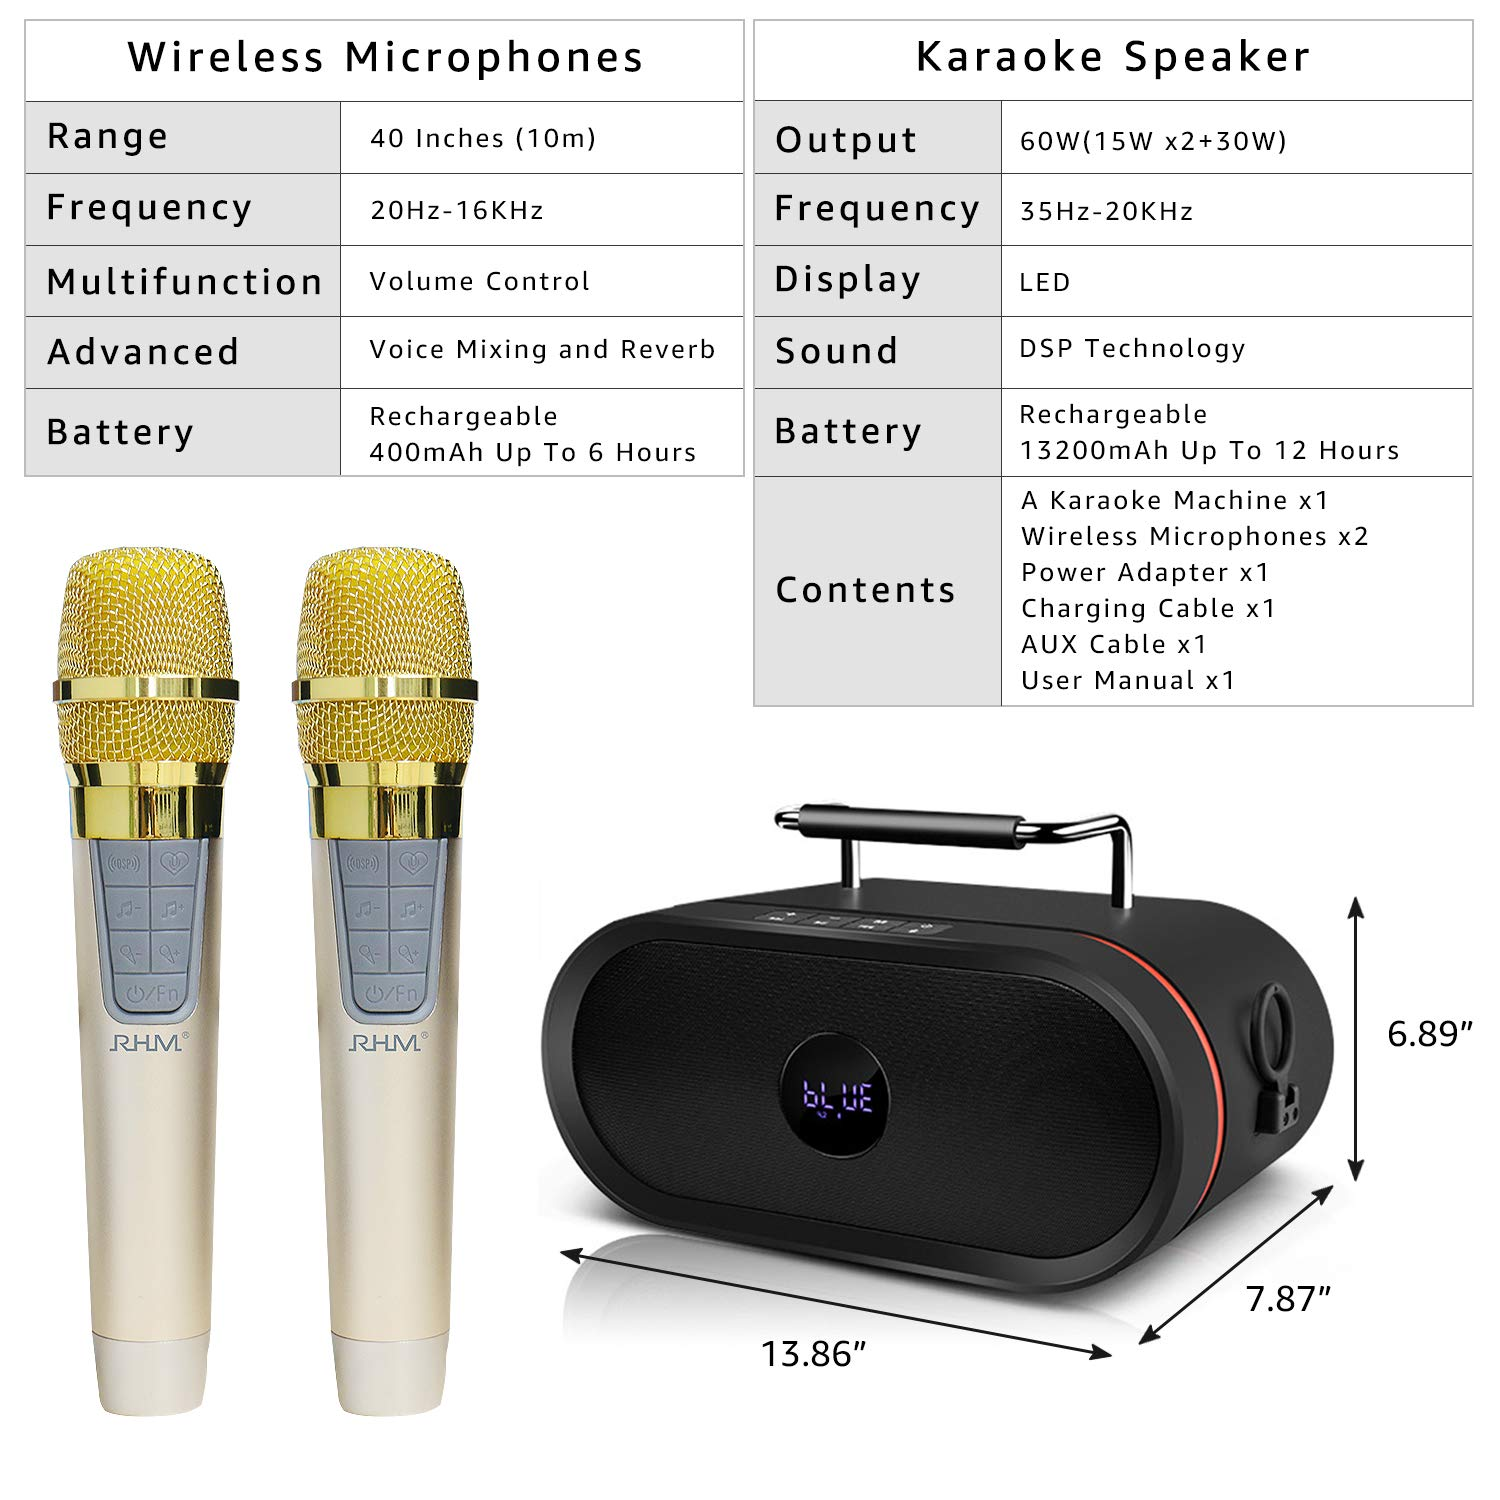 RHM Karaoke Machine for Kids&Adult,2 Wireless Microphones,Rechargeable Battery Speaker,Portable PA Speaker System with Bluetooth/AUX/USB/SD for Home,Party,Wedding,Picnic Outdoors&Indoors Activities by RHM (Image #2)